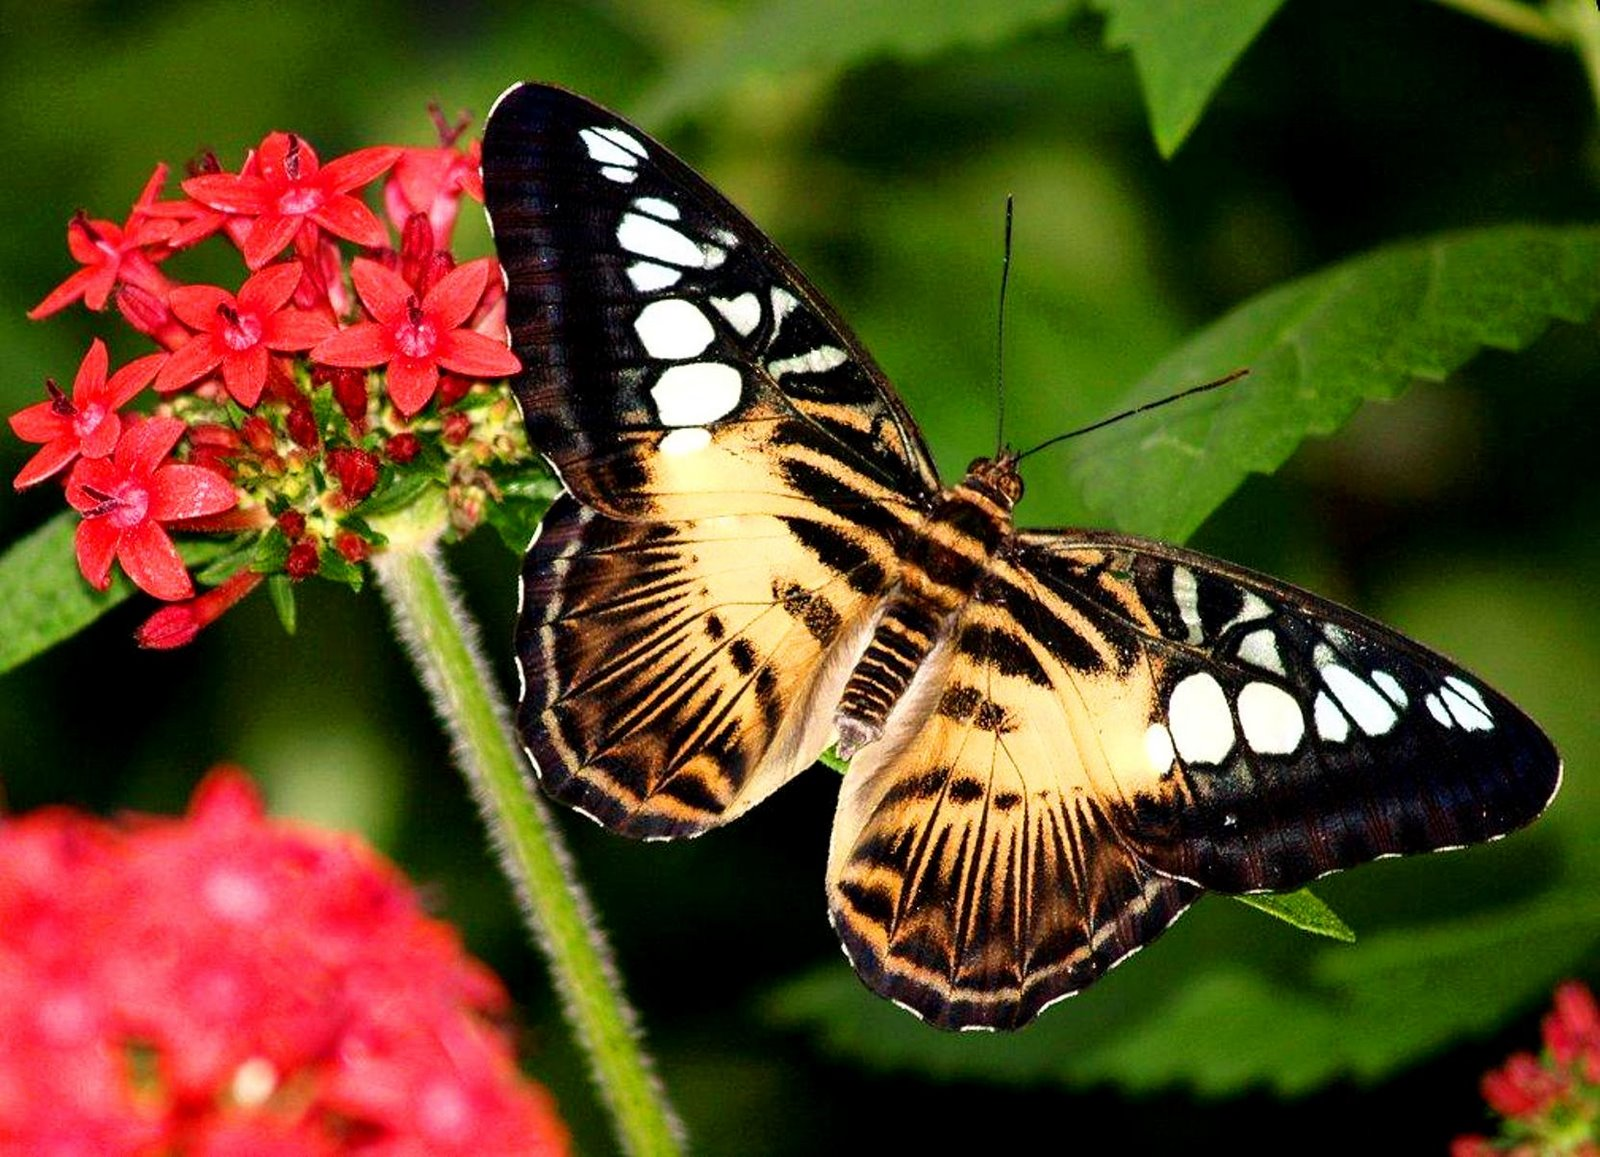 Little Girl With Flowers Hd Wallpaper Butterfly Wallpapers Latest Updates About Technology